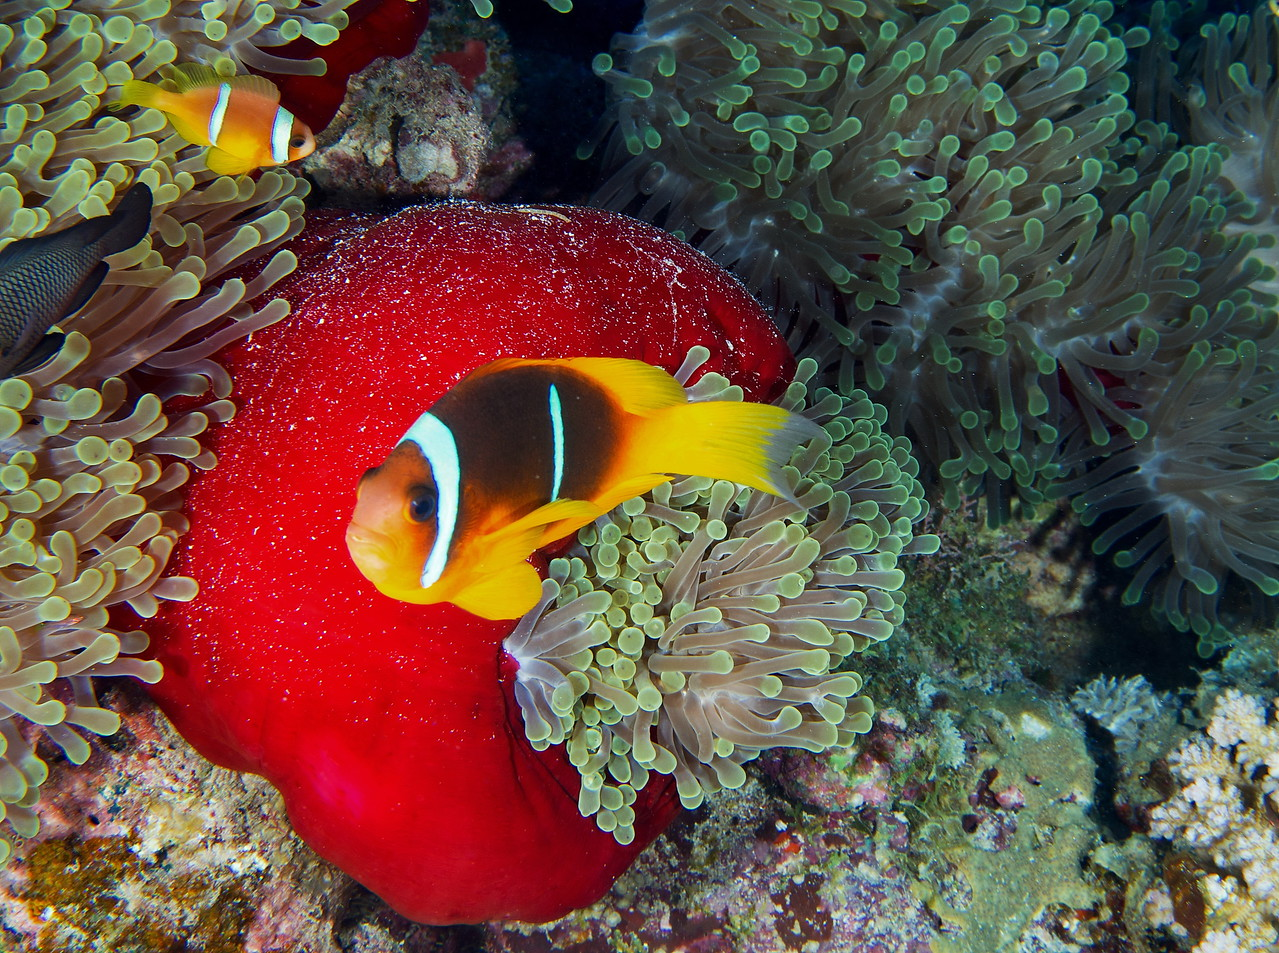 Red Sea anemonefish and red anemone.